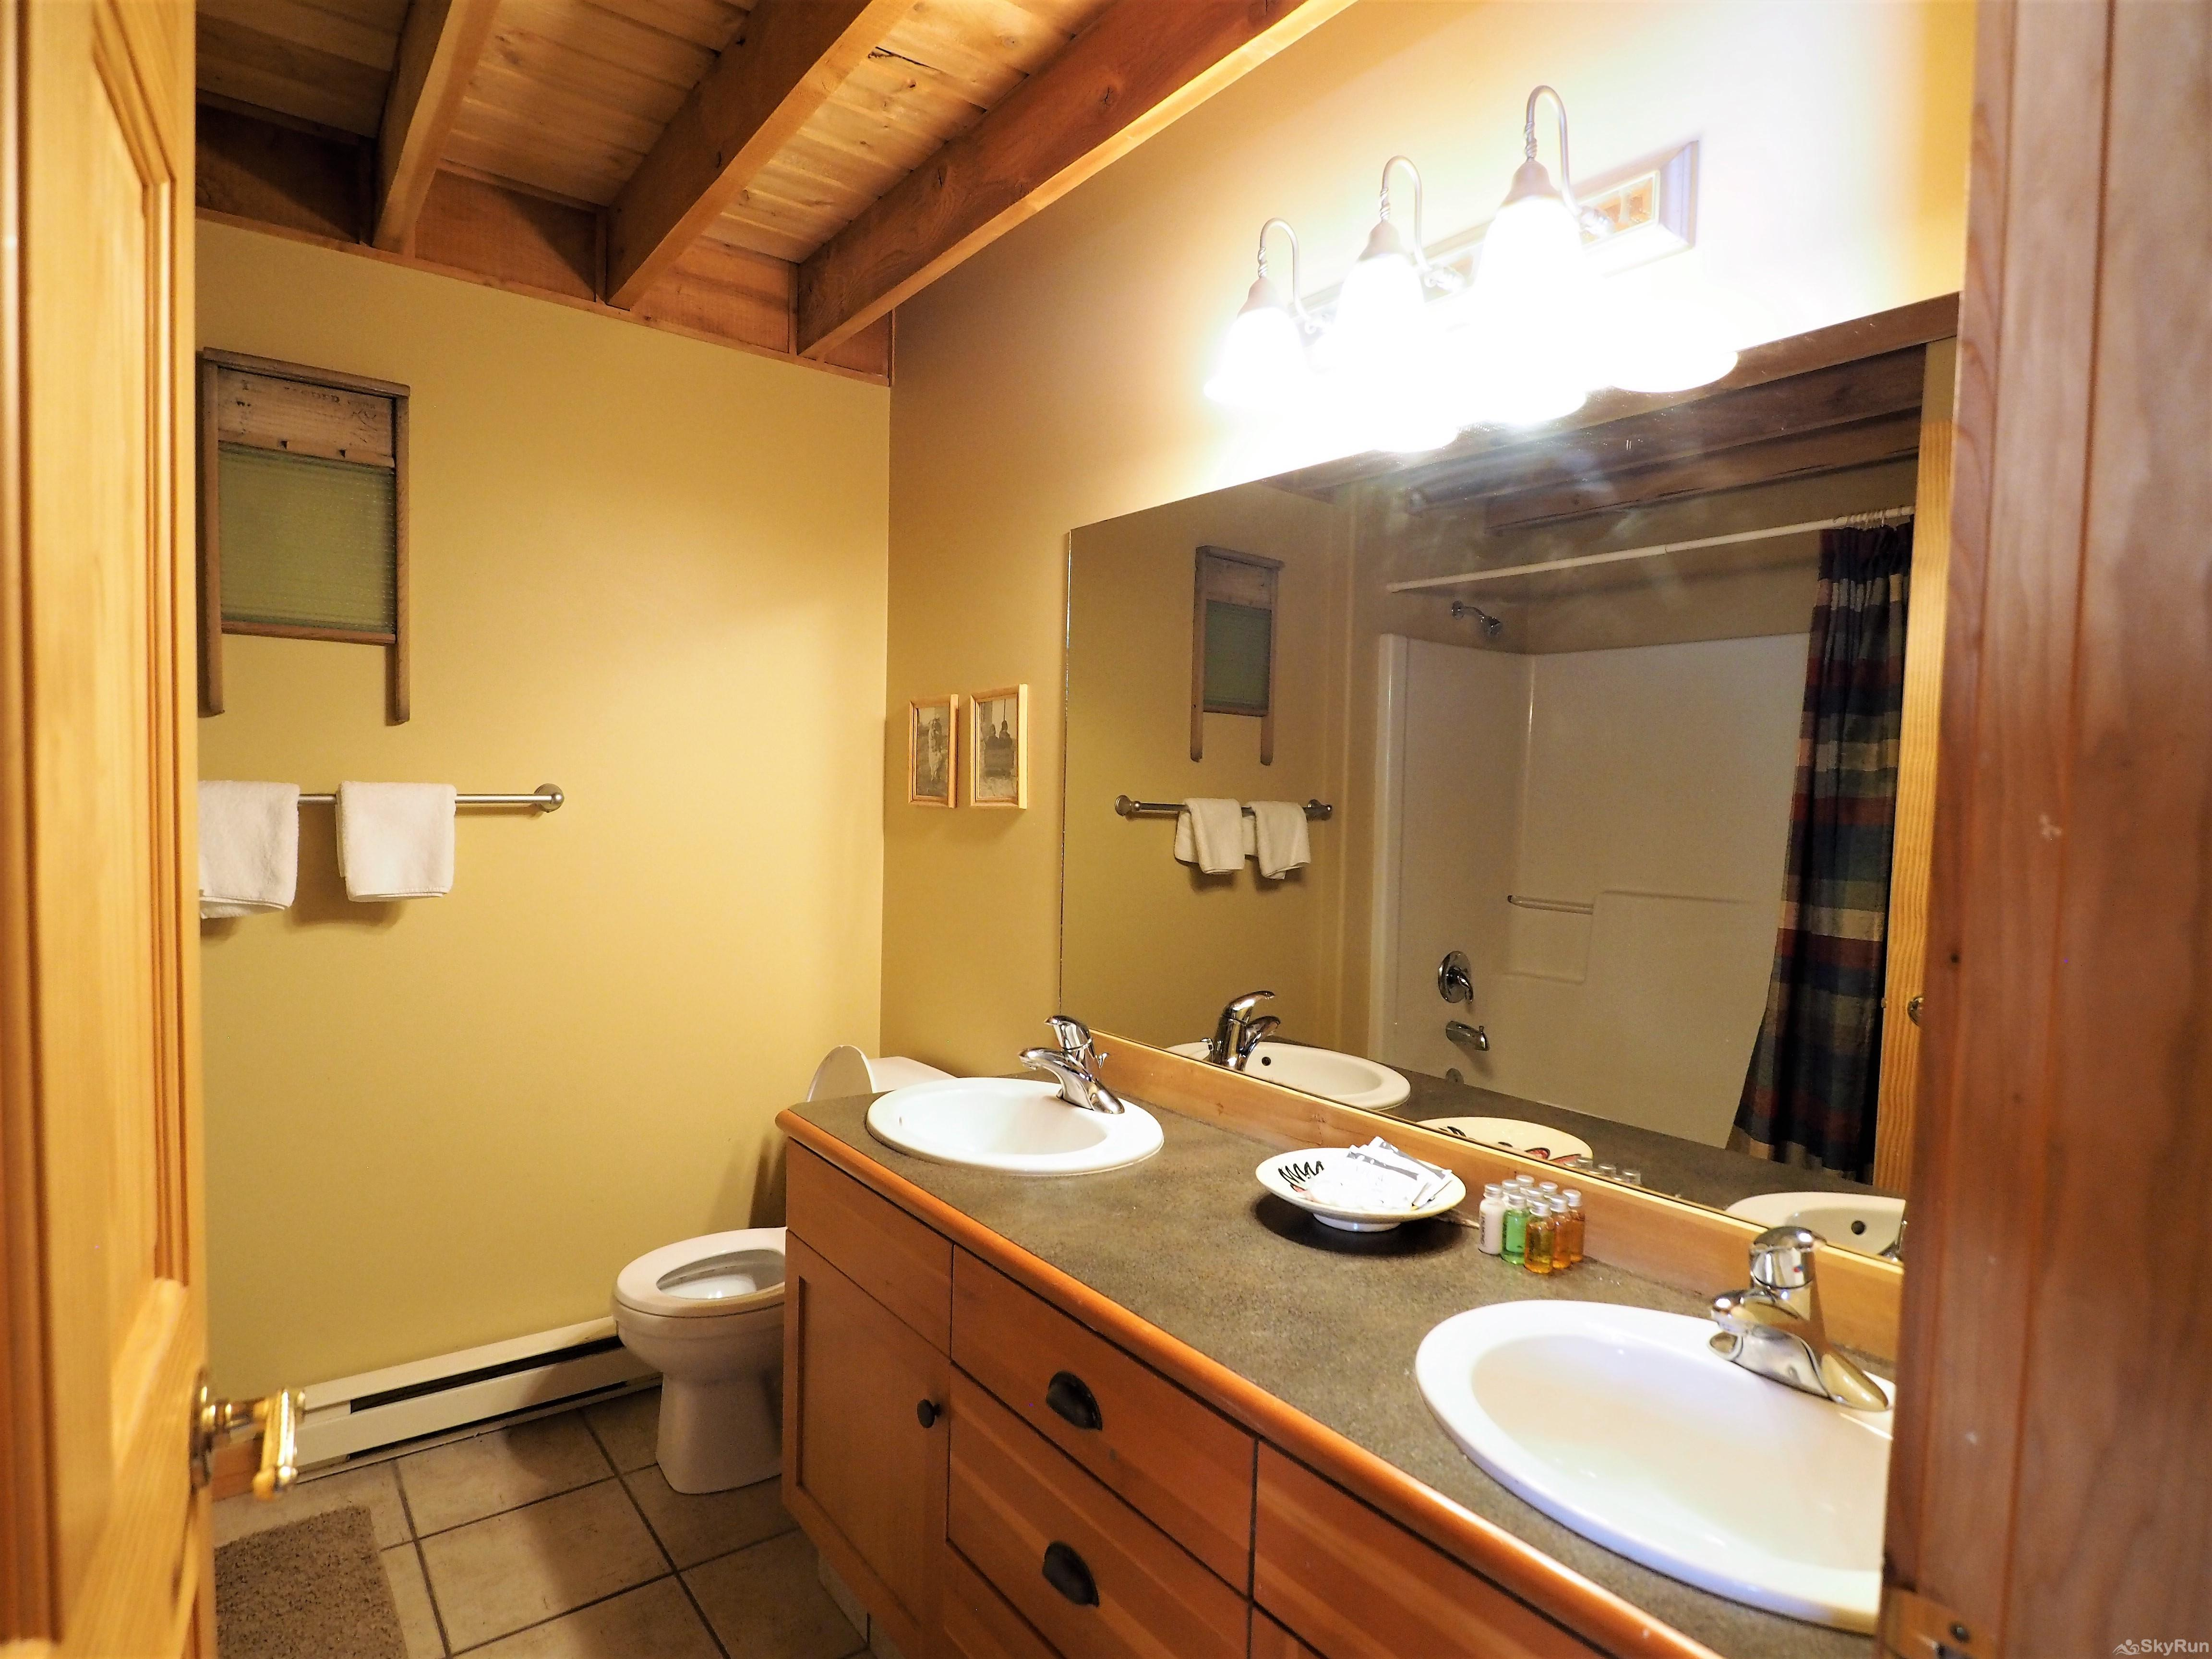 Wildside at Apex 2nd floor bathroom - 2 sinks help with the number of guests staying